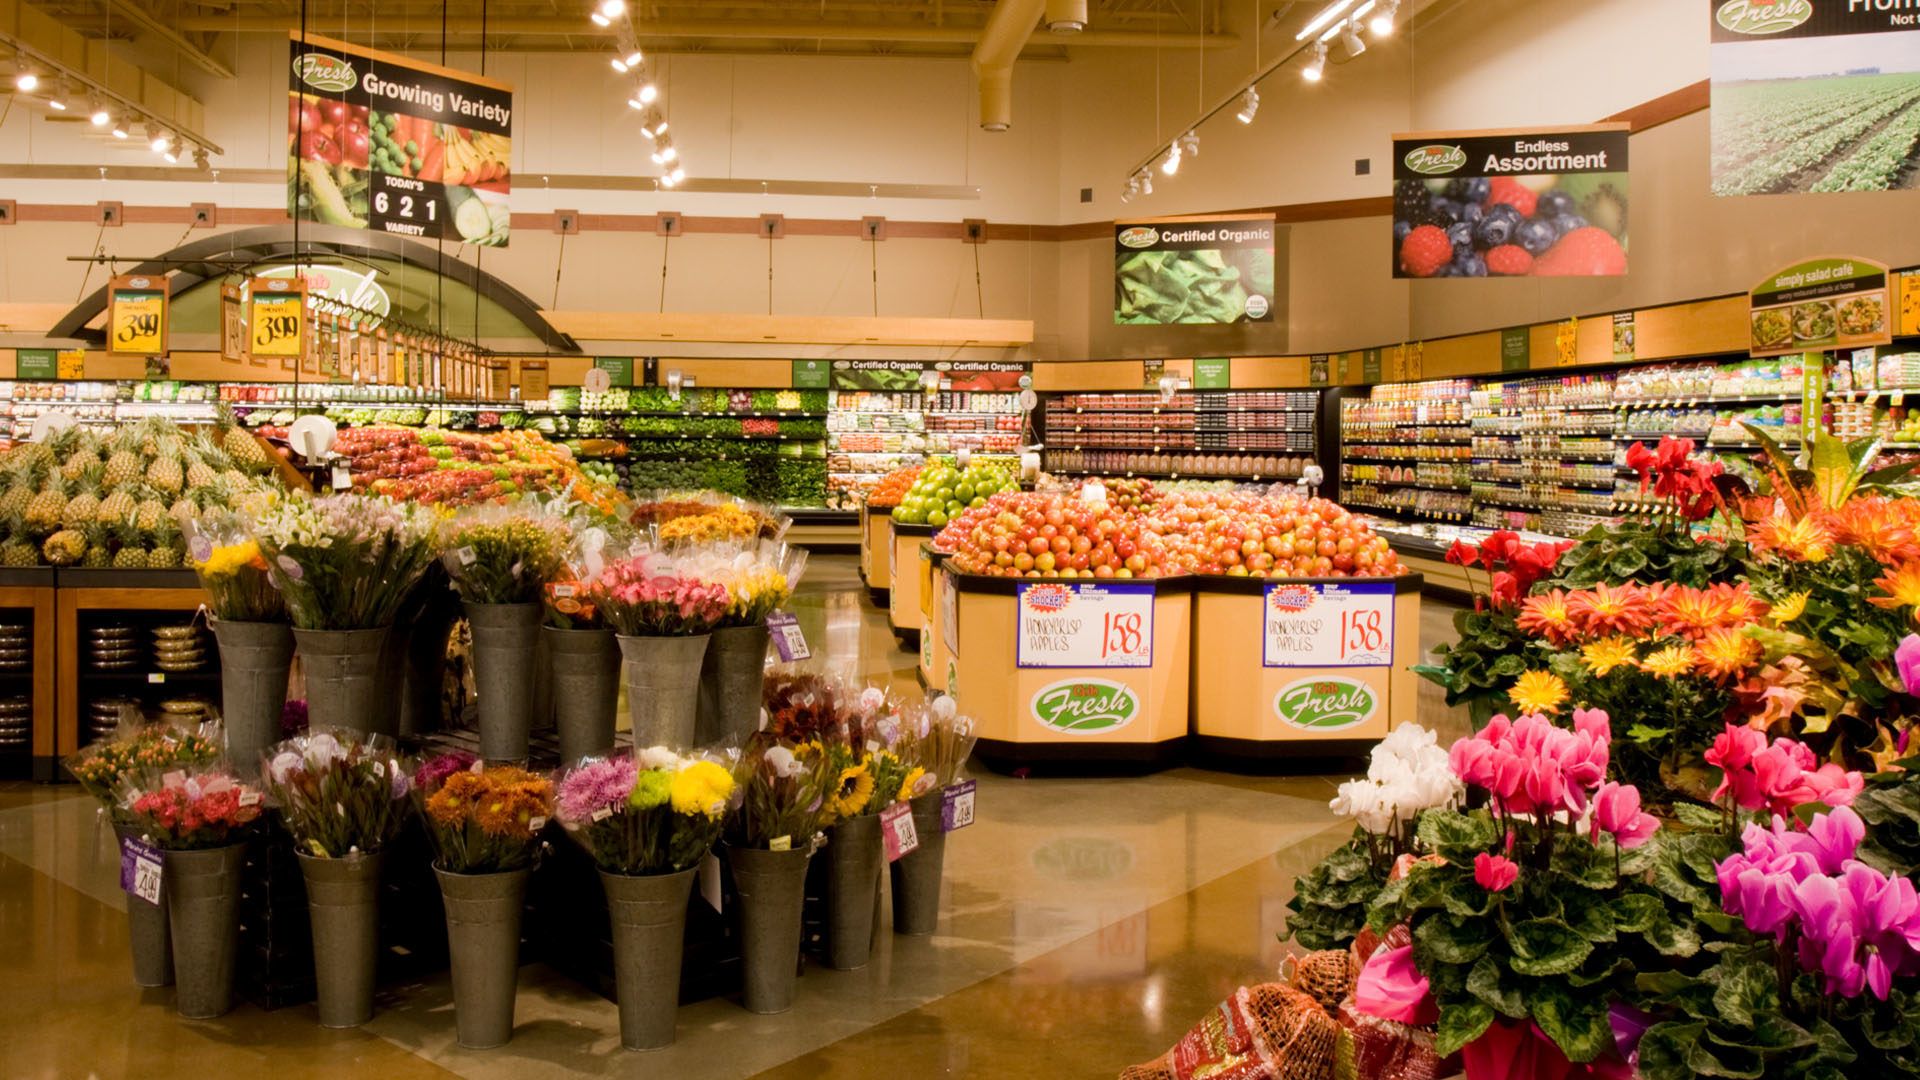 Cub Foods Phalen Grocery Store Interior Produce and Flowers